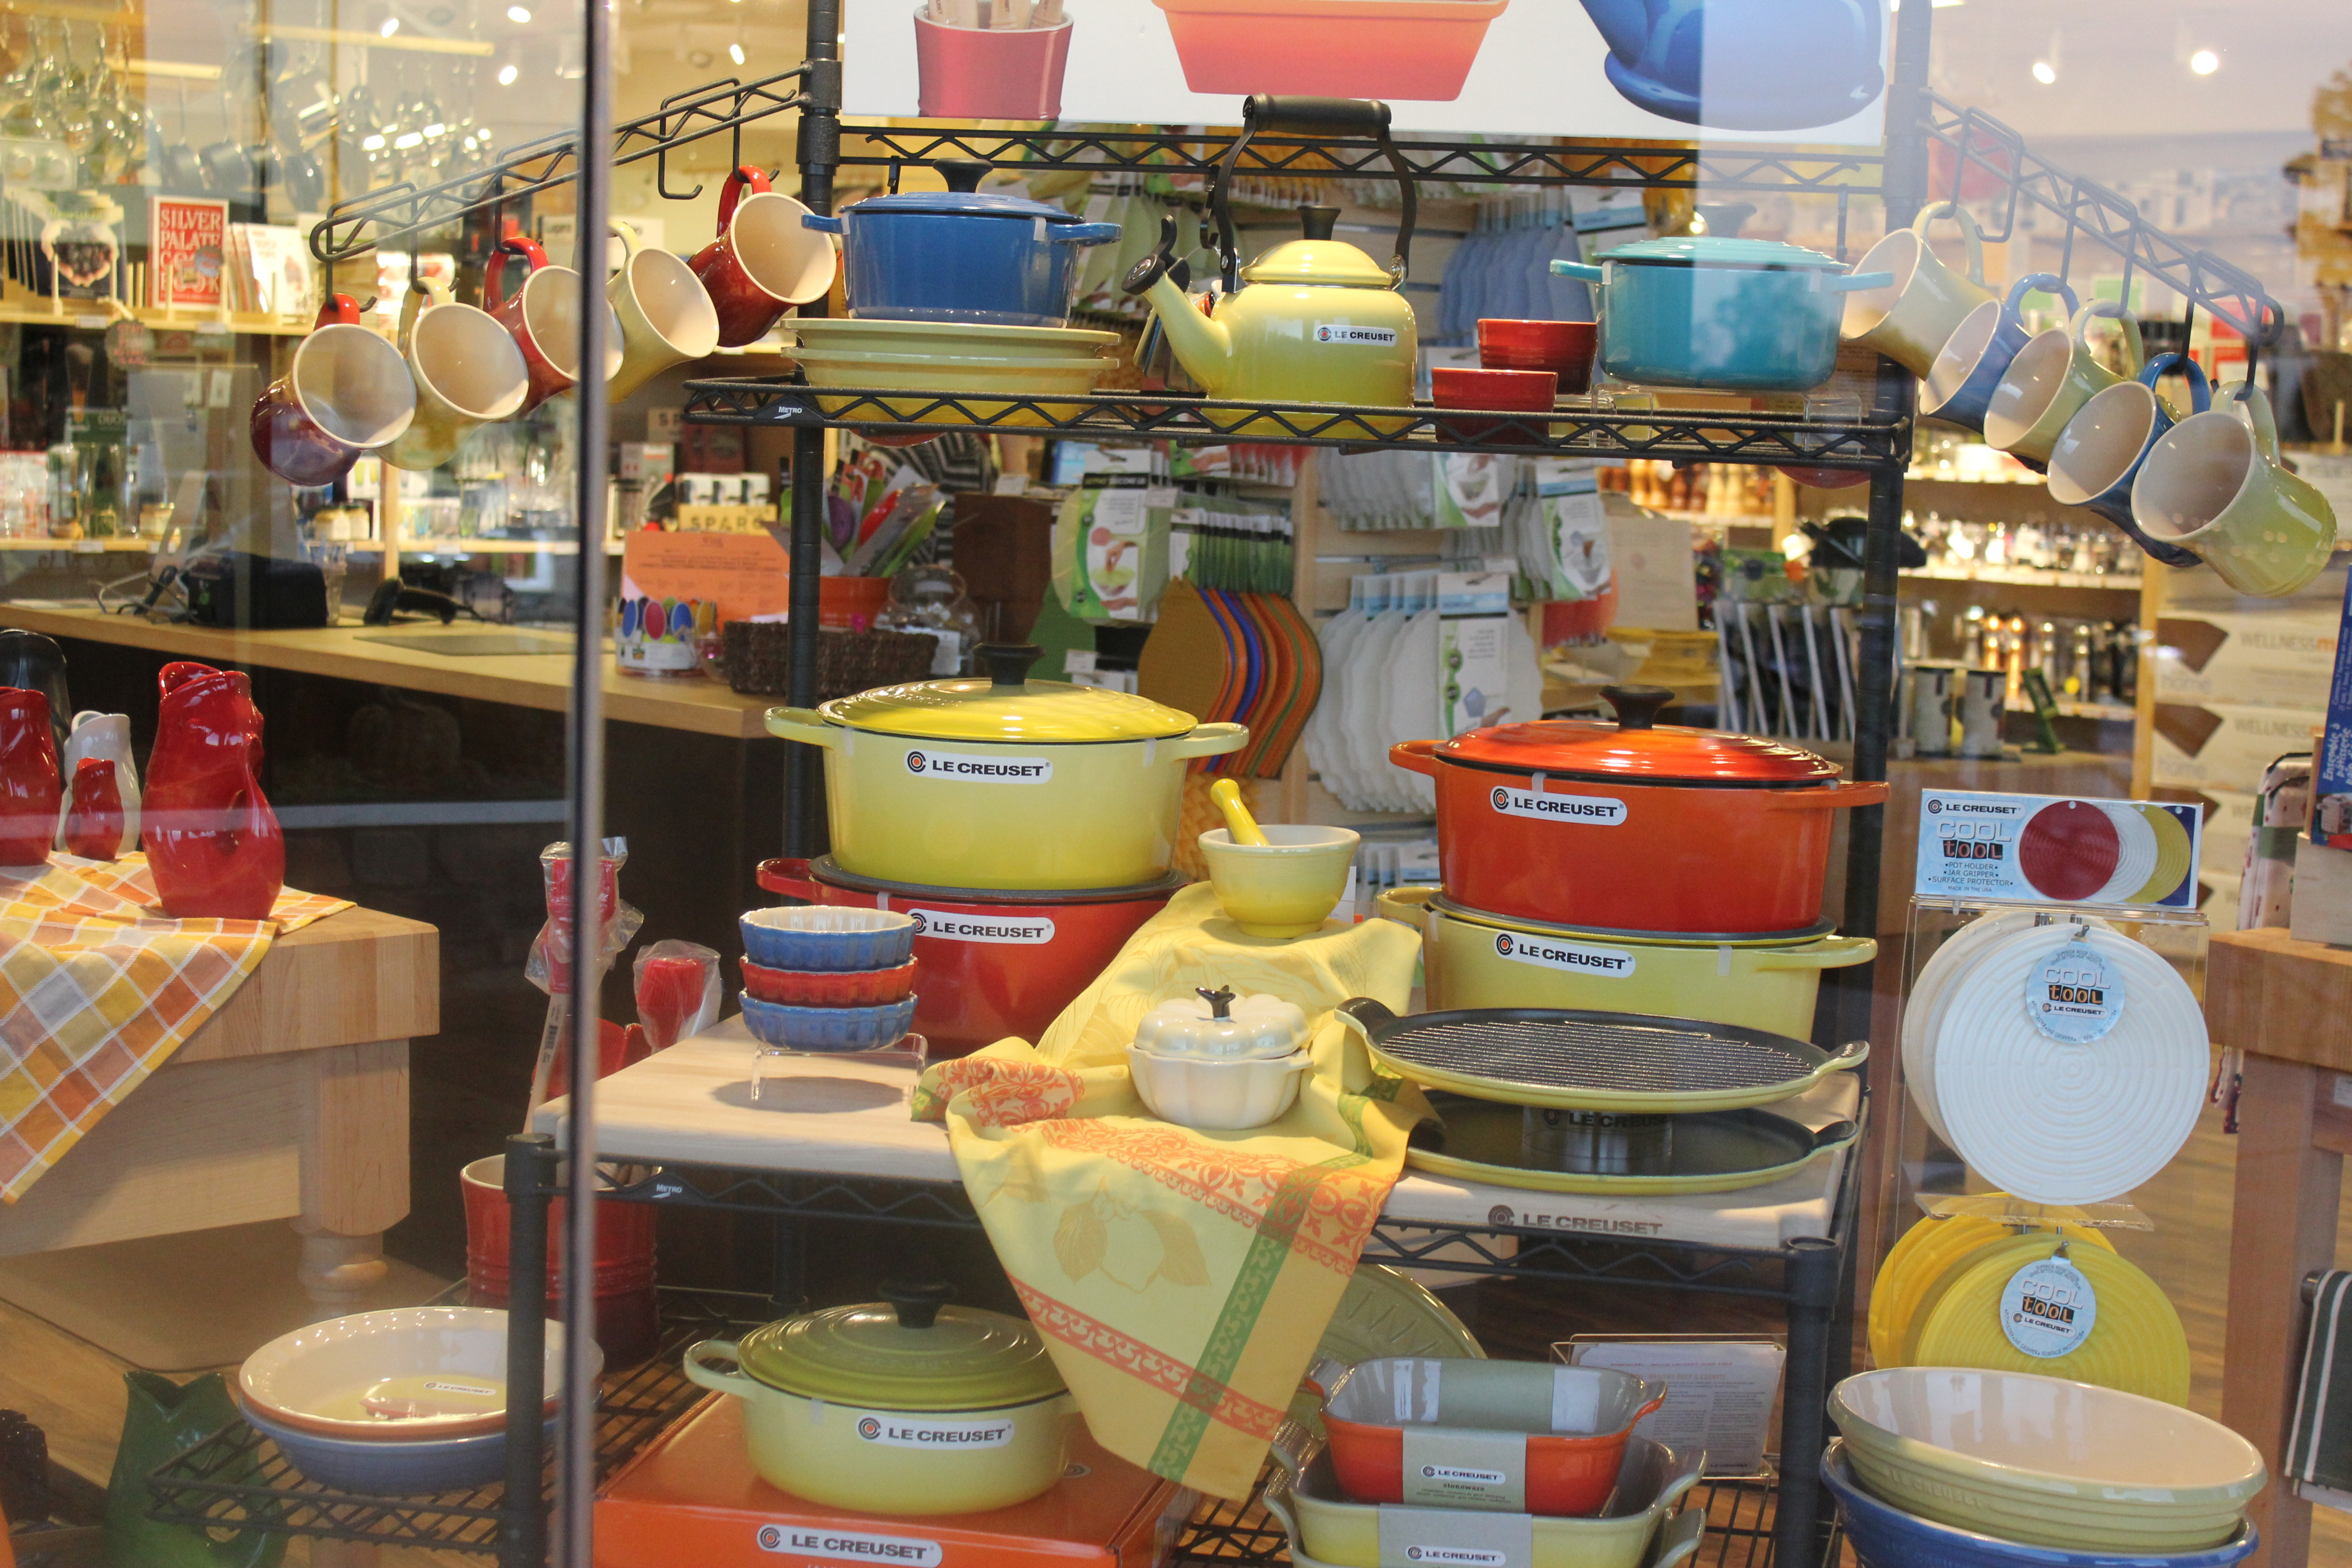 Kitchenware Shop Whisk Me Away To Whisk Triangle Arts And Entertainment